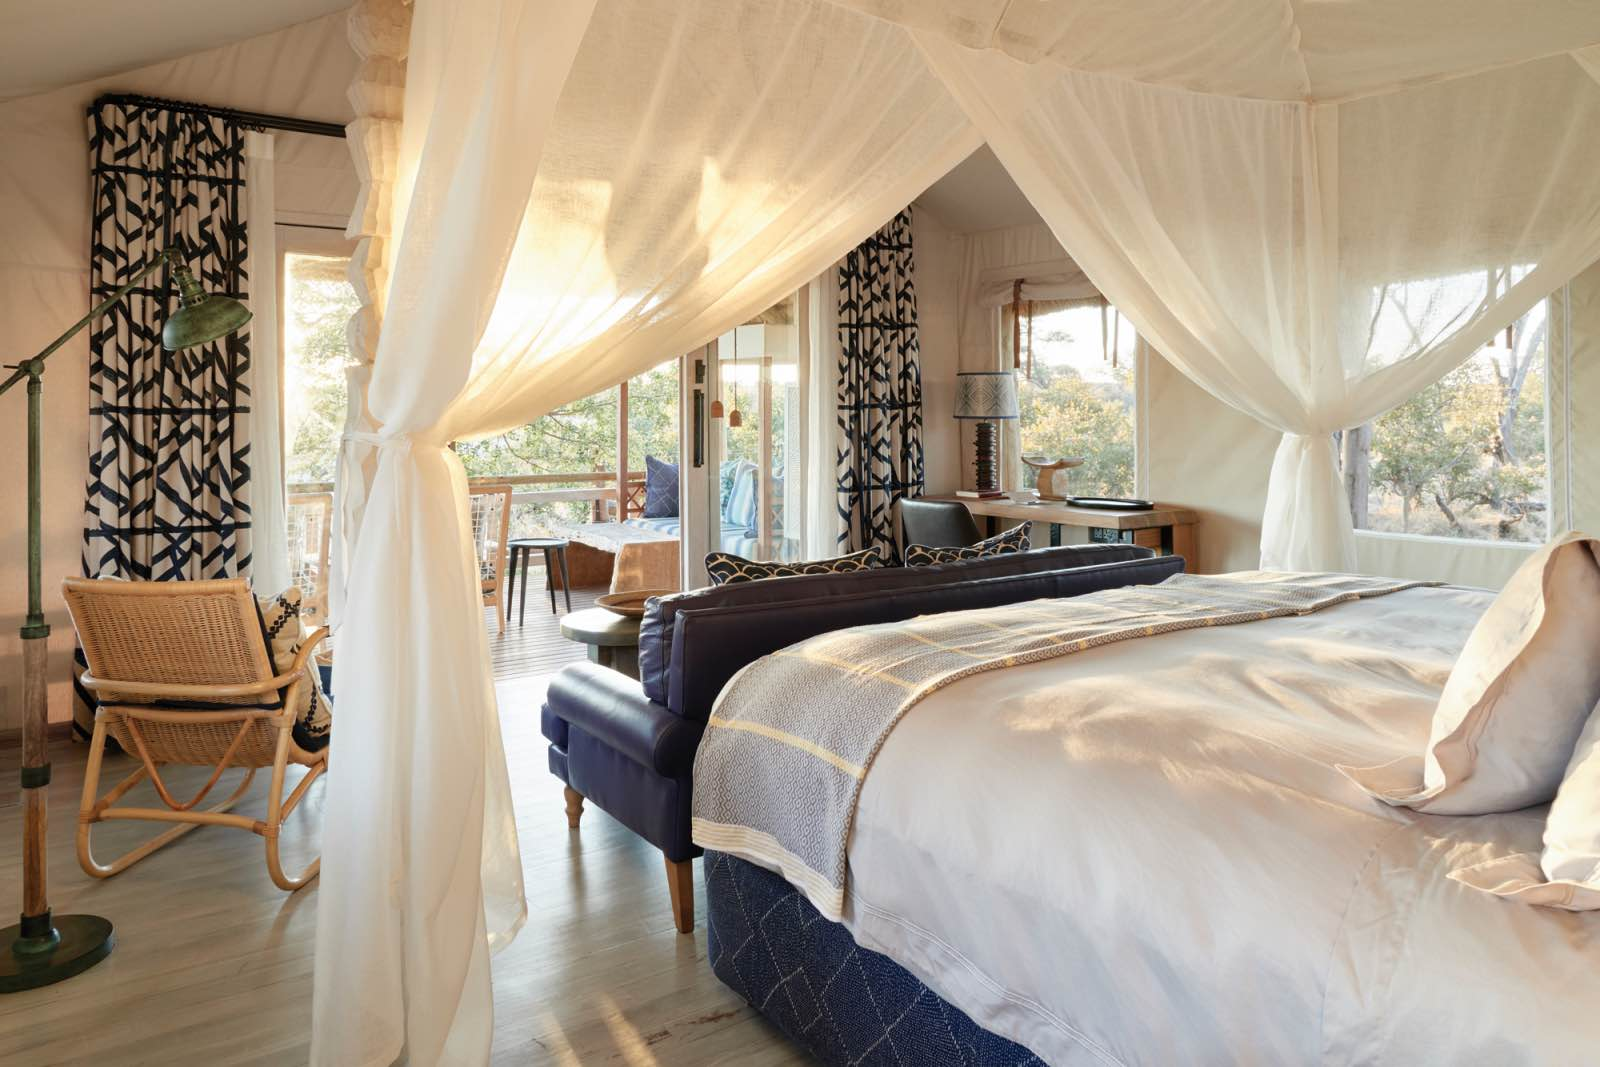 Inside the luxurious rooms at Savute Elephant Lodge